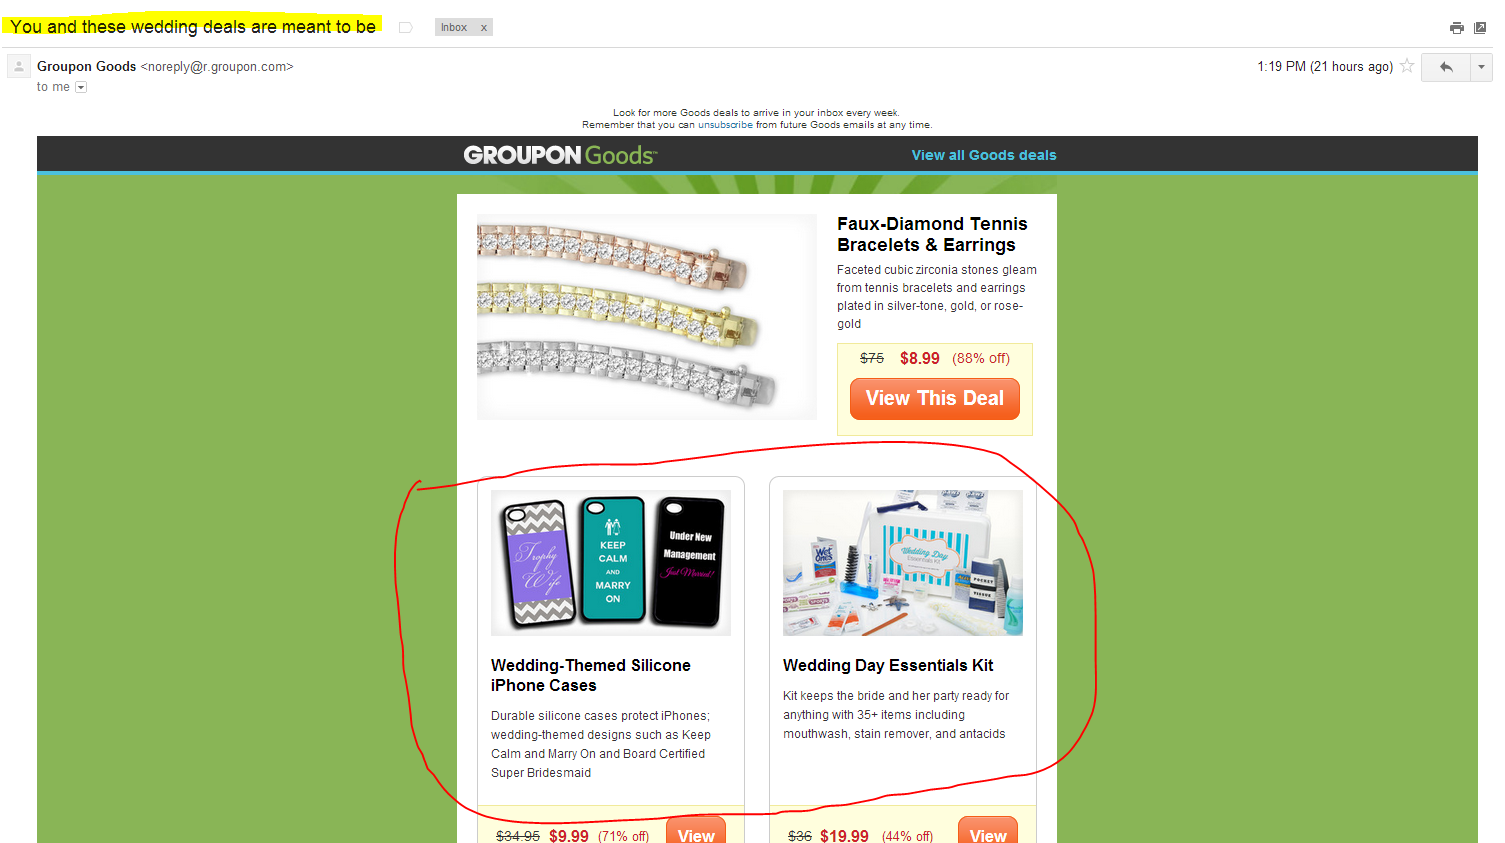 Me and these wedding deals are meant to be? THANKS GROUPON.